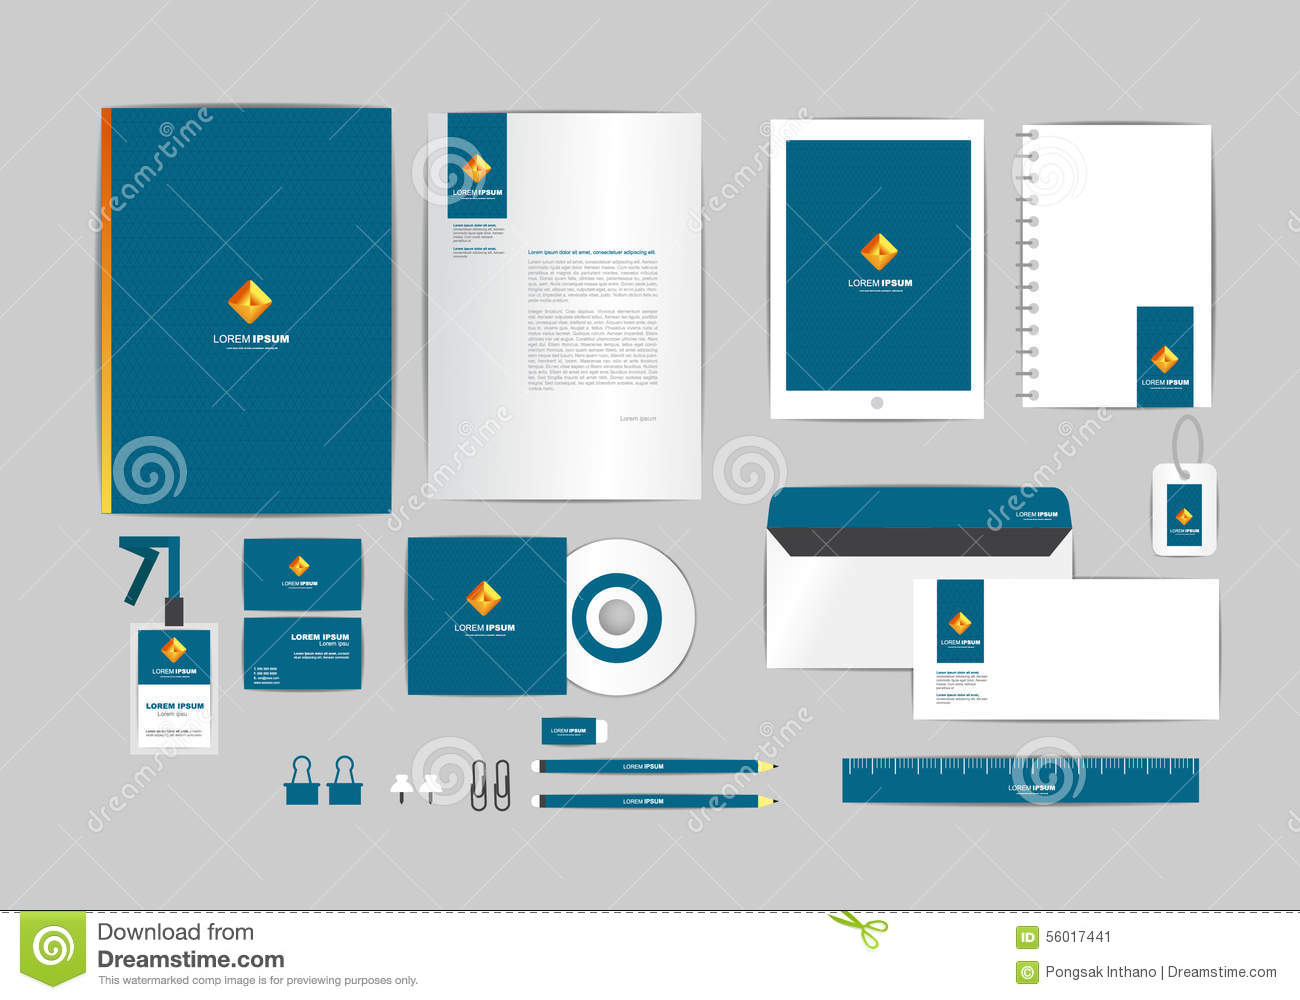 Blue Gold And Square Corporate Identity Template For Your